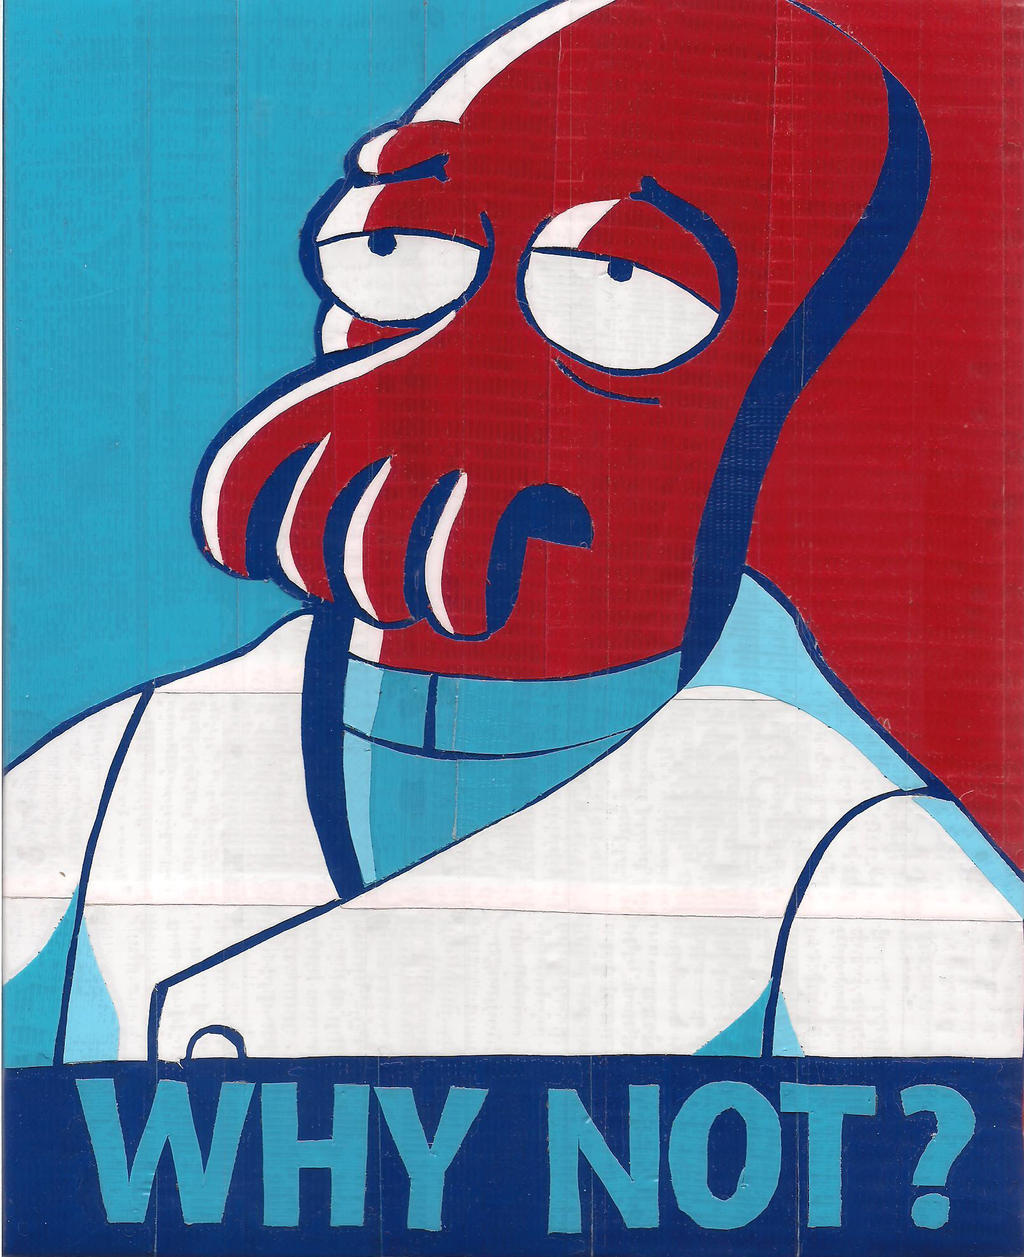 Why Not Zoidberg? by D...